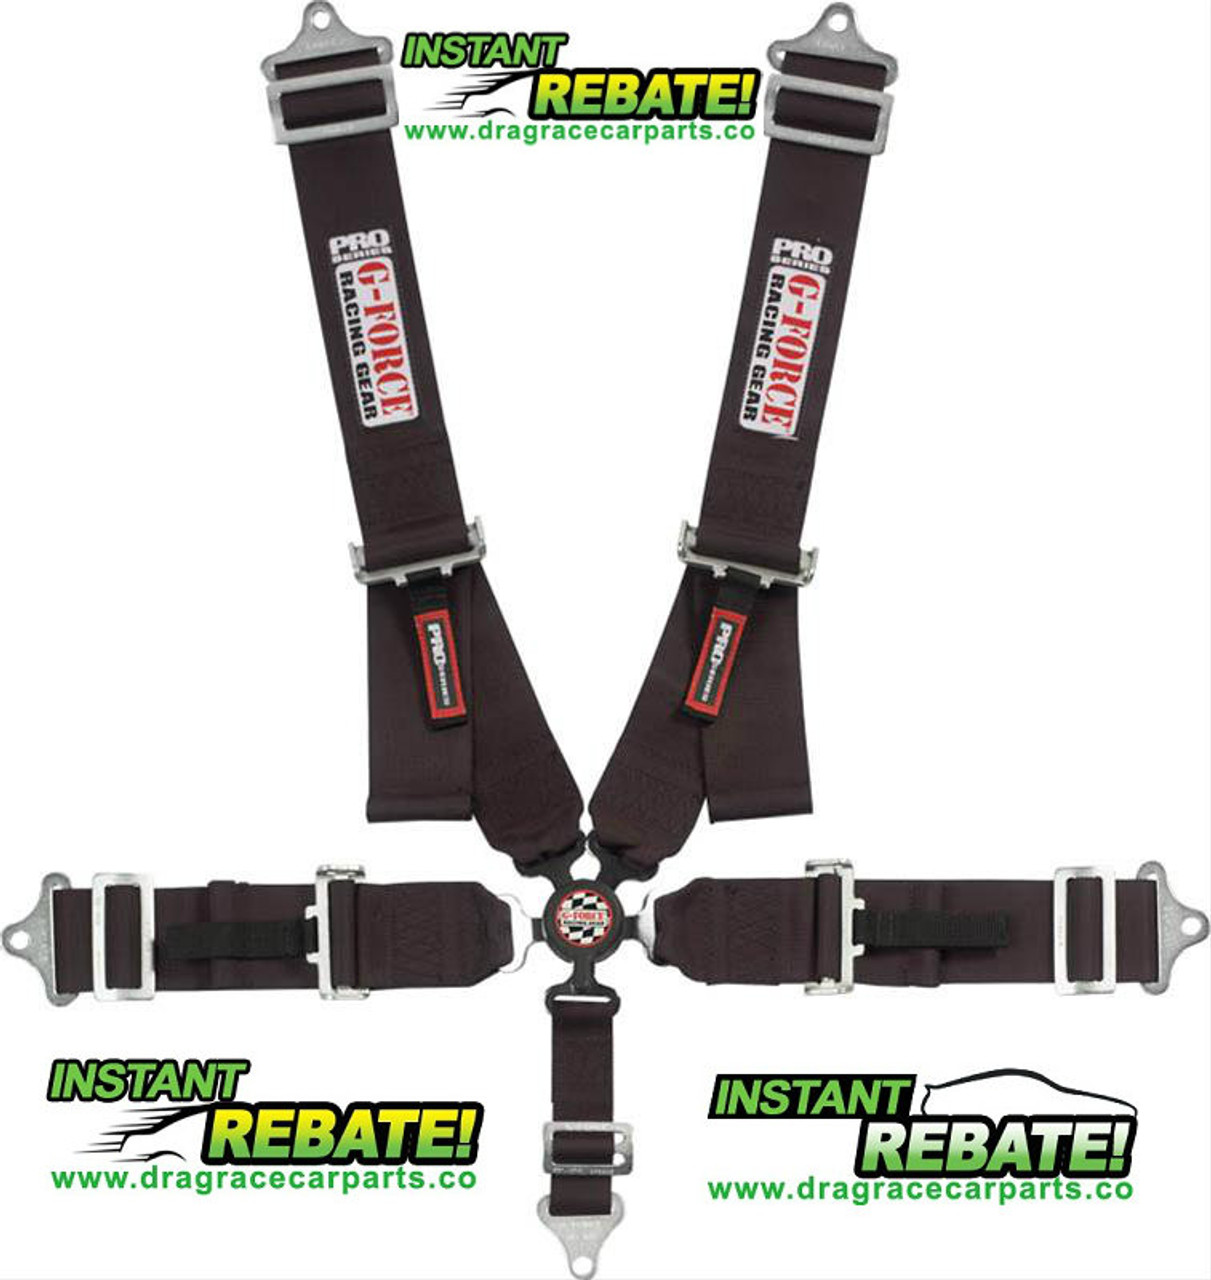 G-FORCE Racing Camlock 5 Point Harness Set Black 7000BK with FREE SHIPPING and INSTANT REBATE SAVINGS